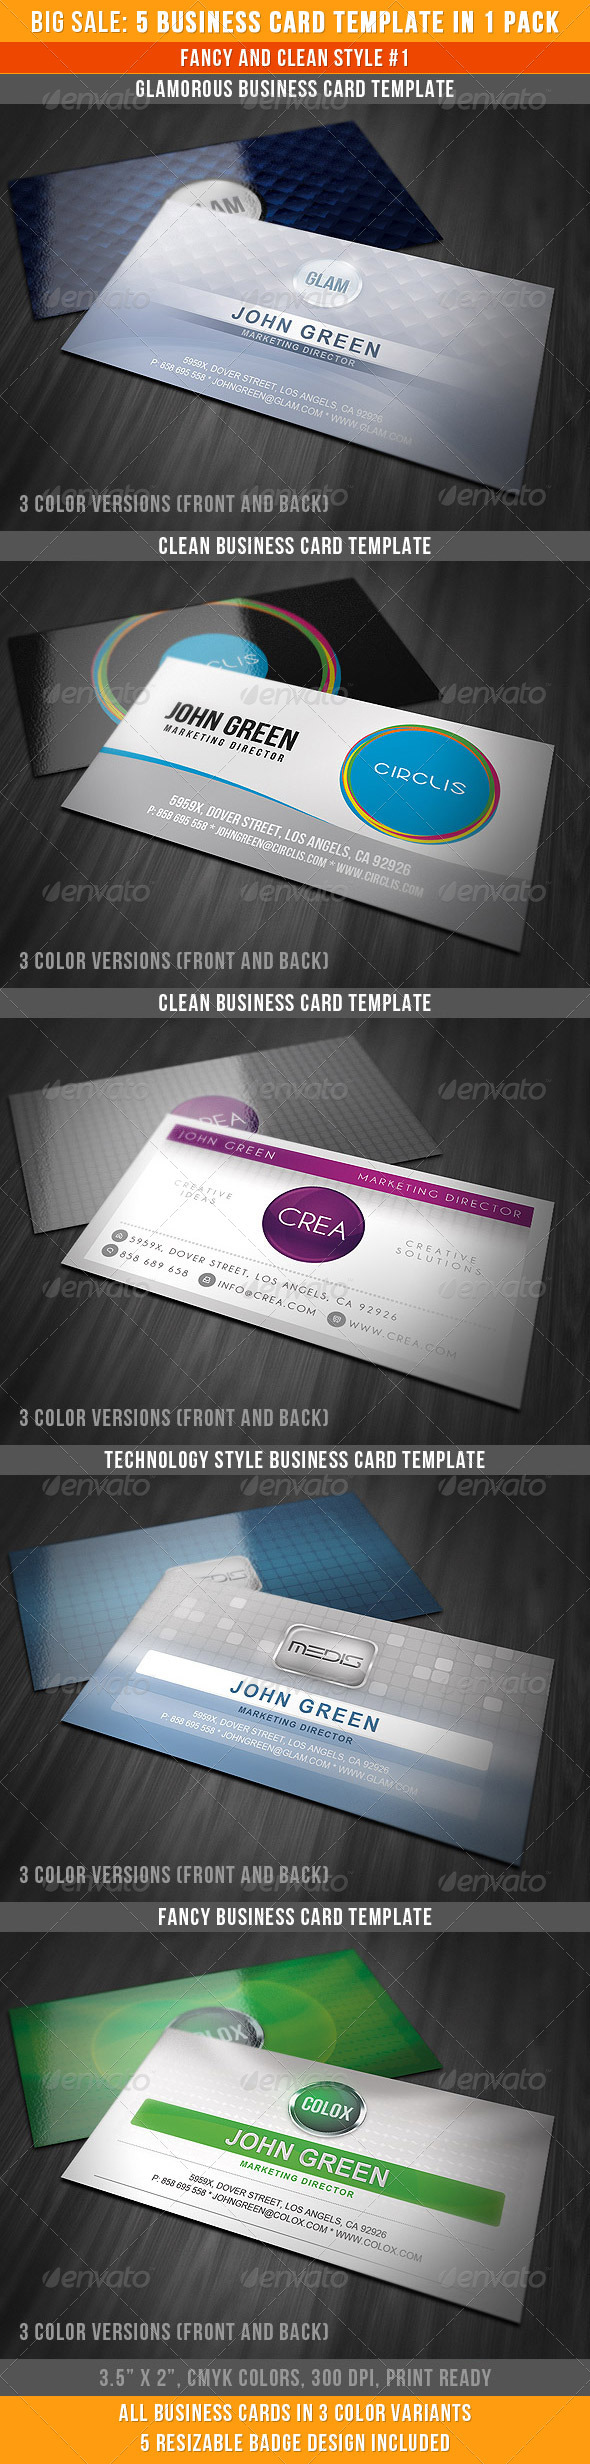 Fancy And Clean Business Cards Bundle - Business Cards Print Templates